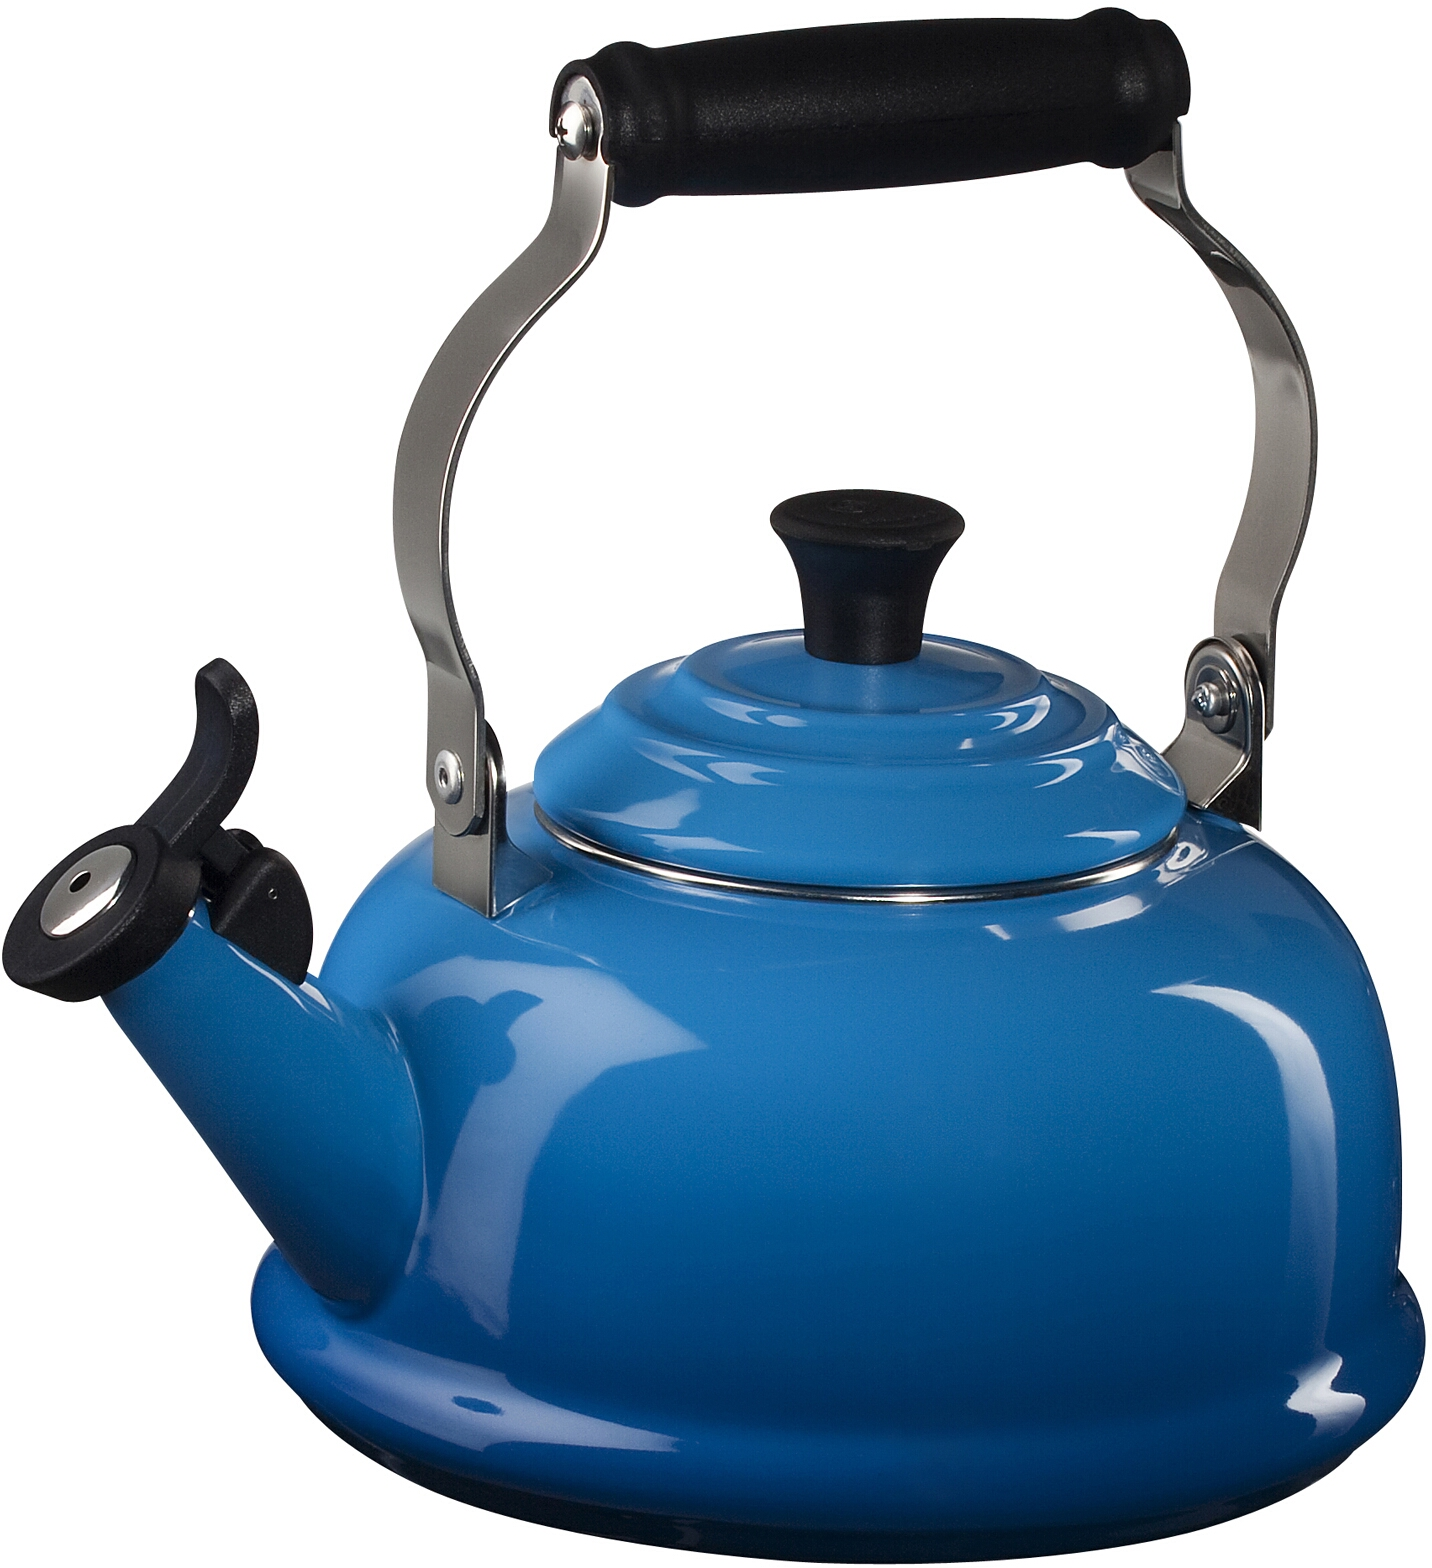 Le Creuset Marseille Blue Enamel On Steel Whistling Tea Kettle, 1.75 Quart